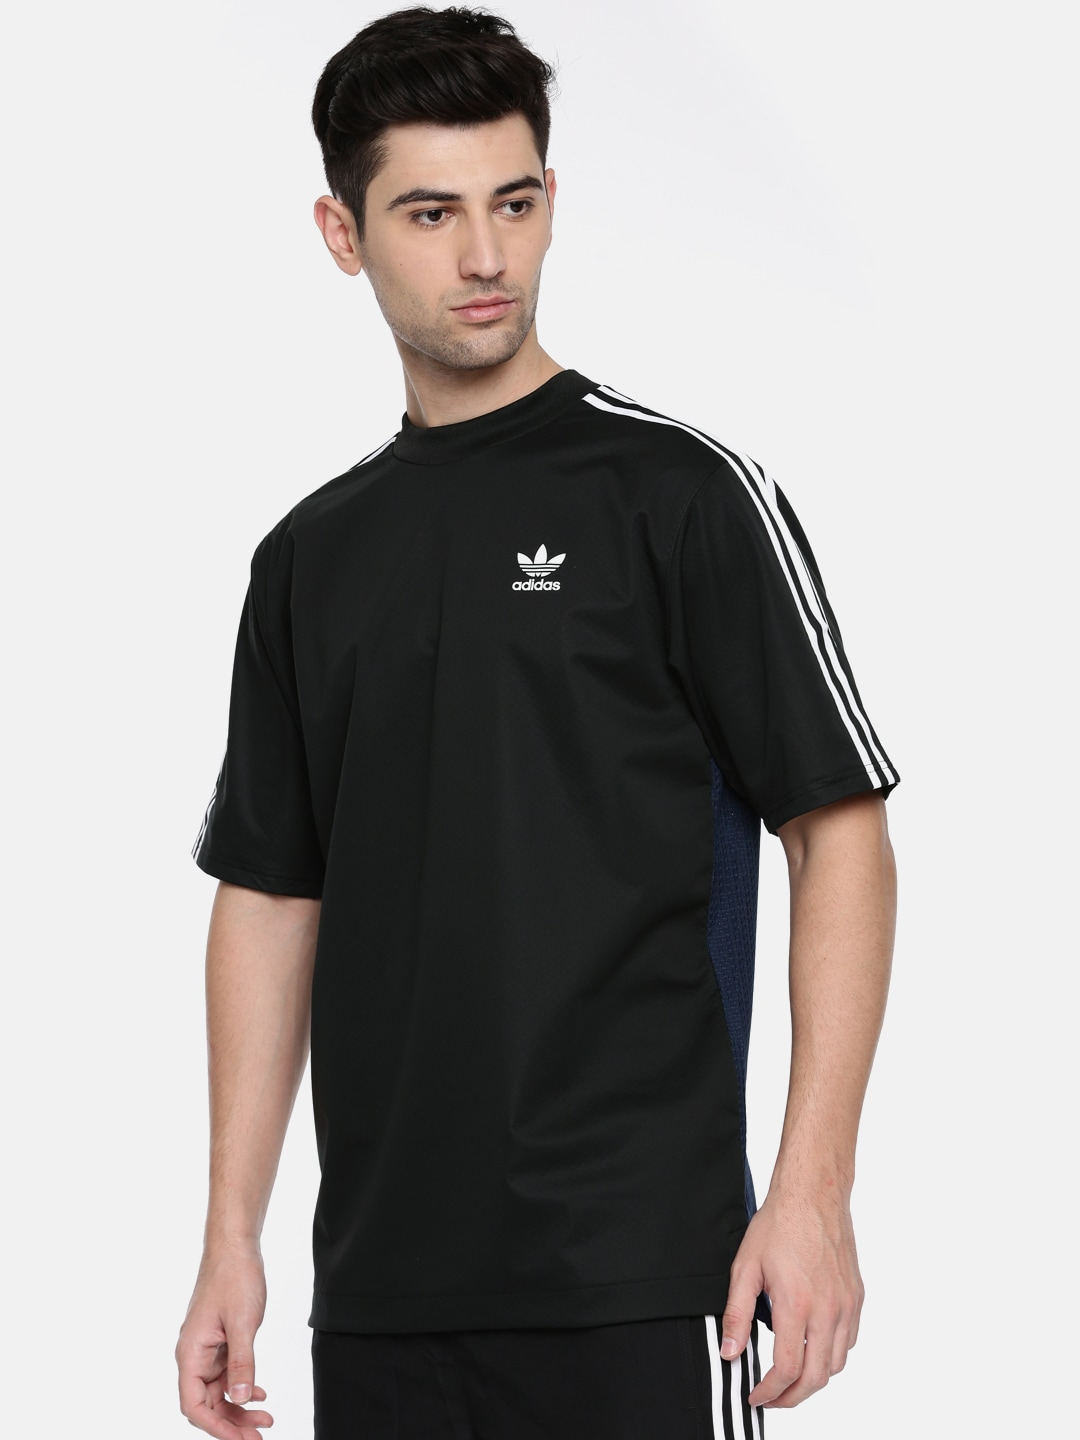 a57b9ab3e67 Buy ADIDAS Originals Men Black 3 Stripes Solid Round Neck T Shirt ...